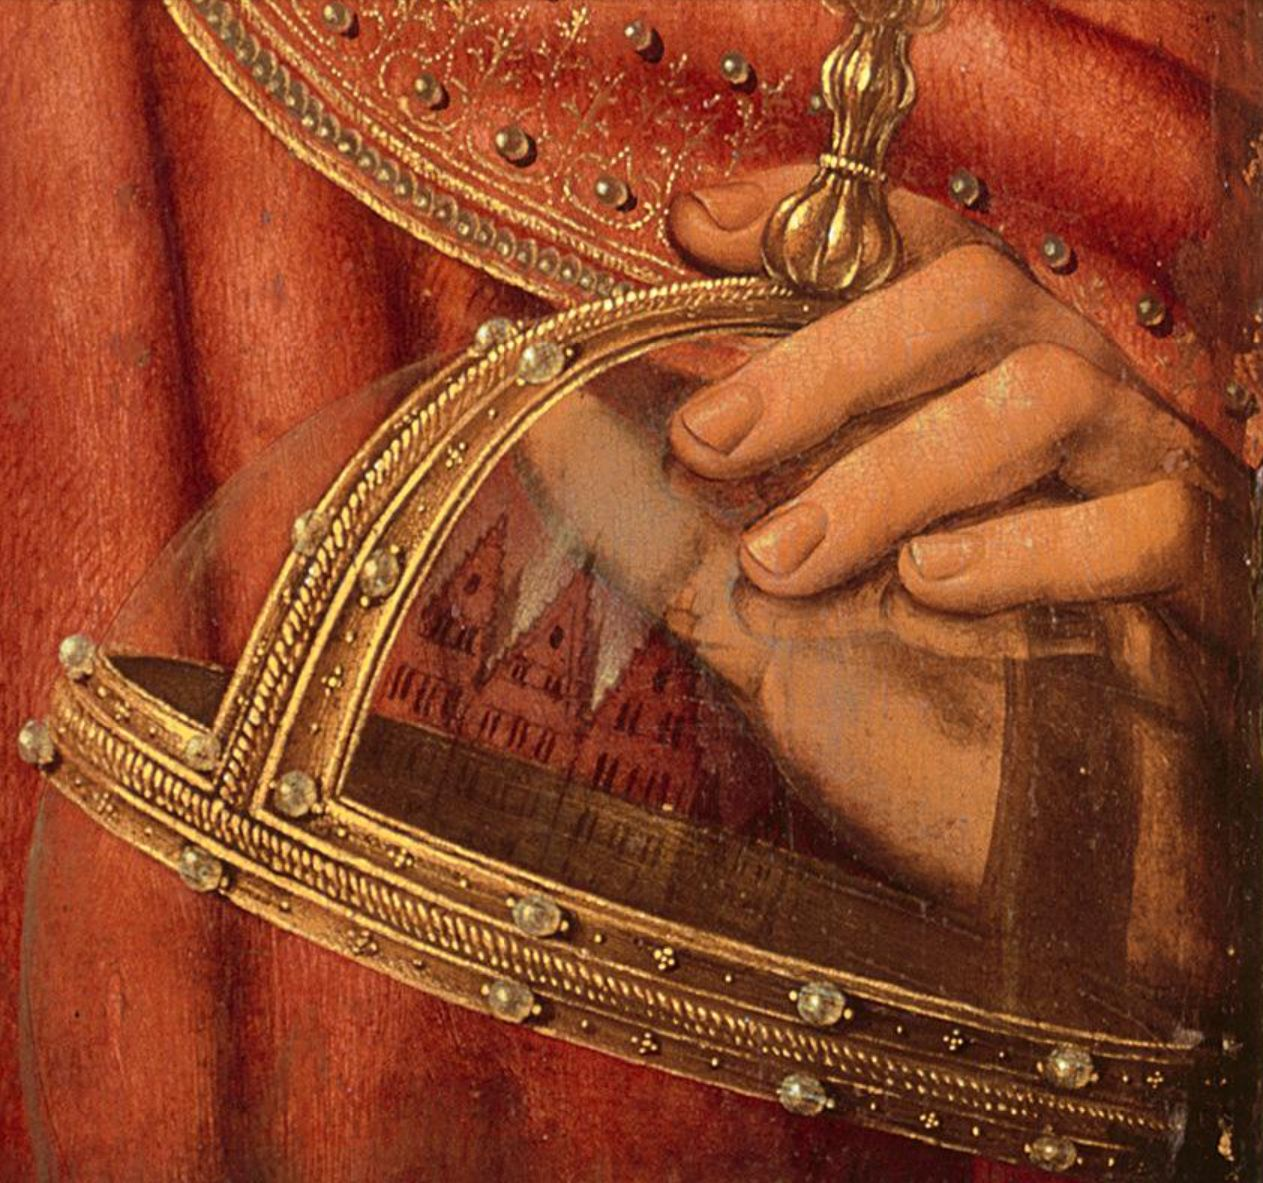 1510-25 CHRIST AND THE VIRGIN atelier QUENTIN MASSYS National Gallery detail globe